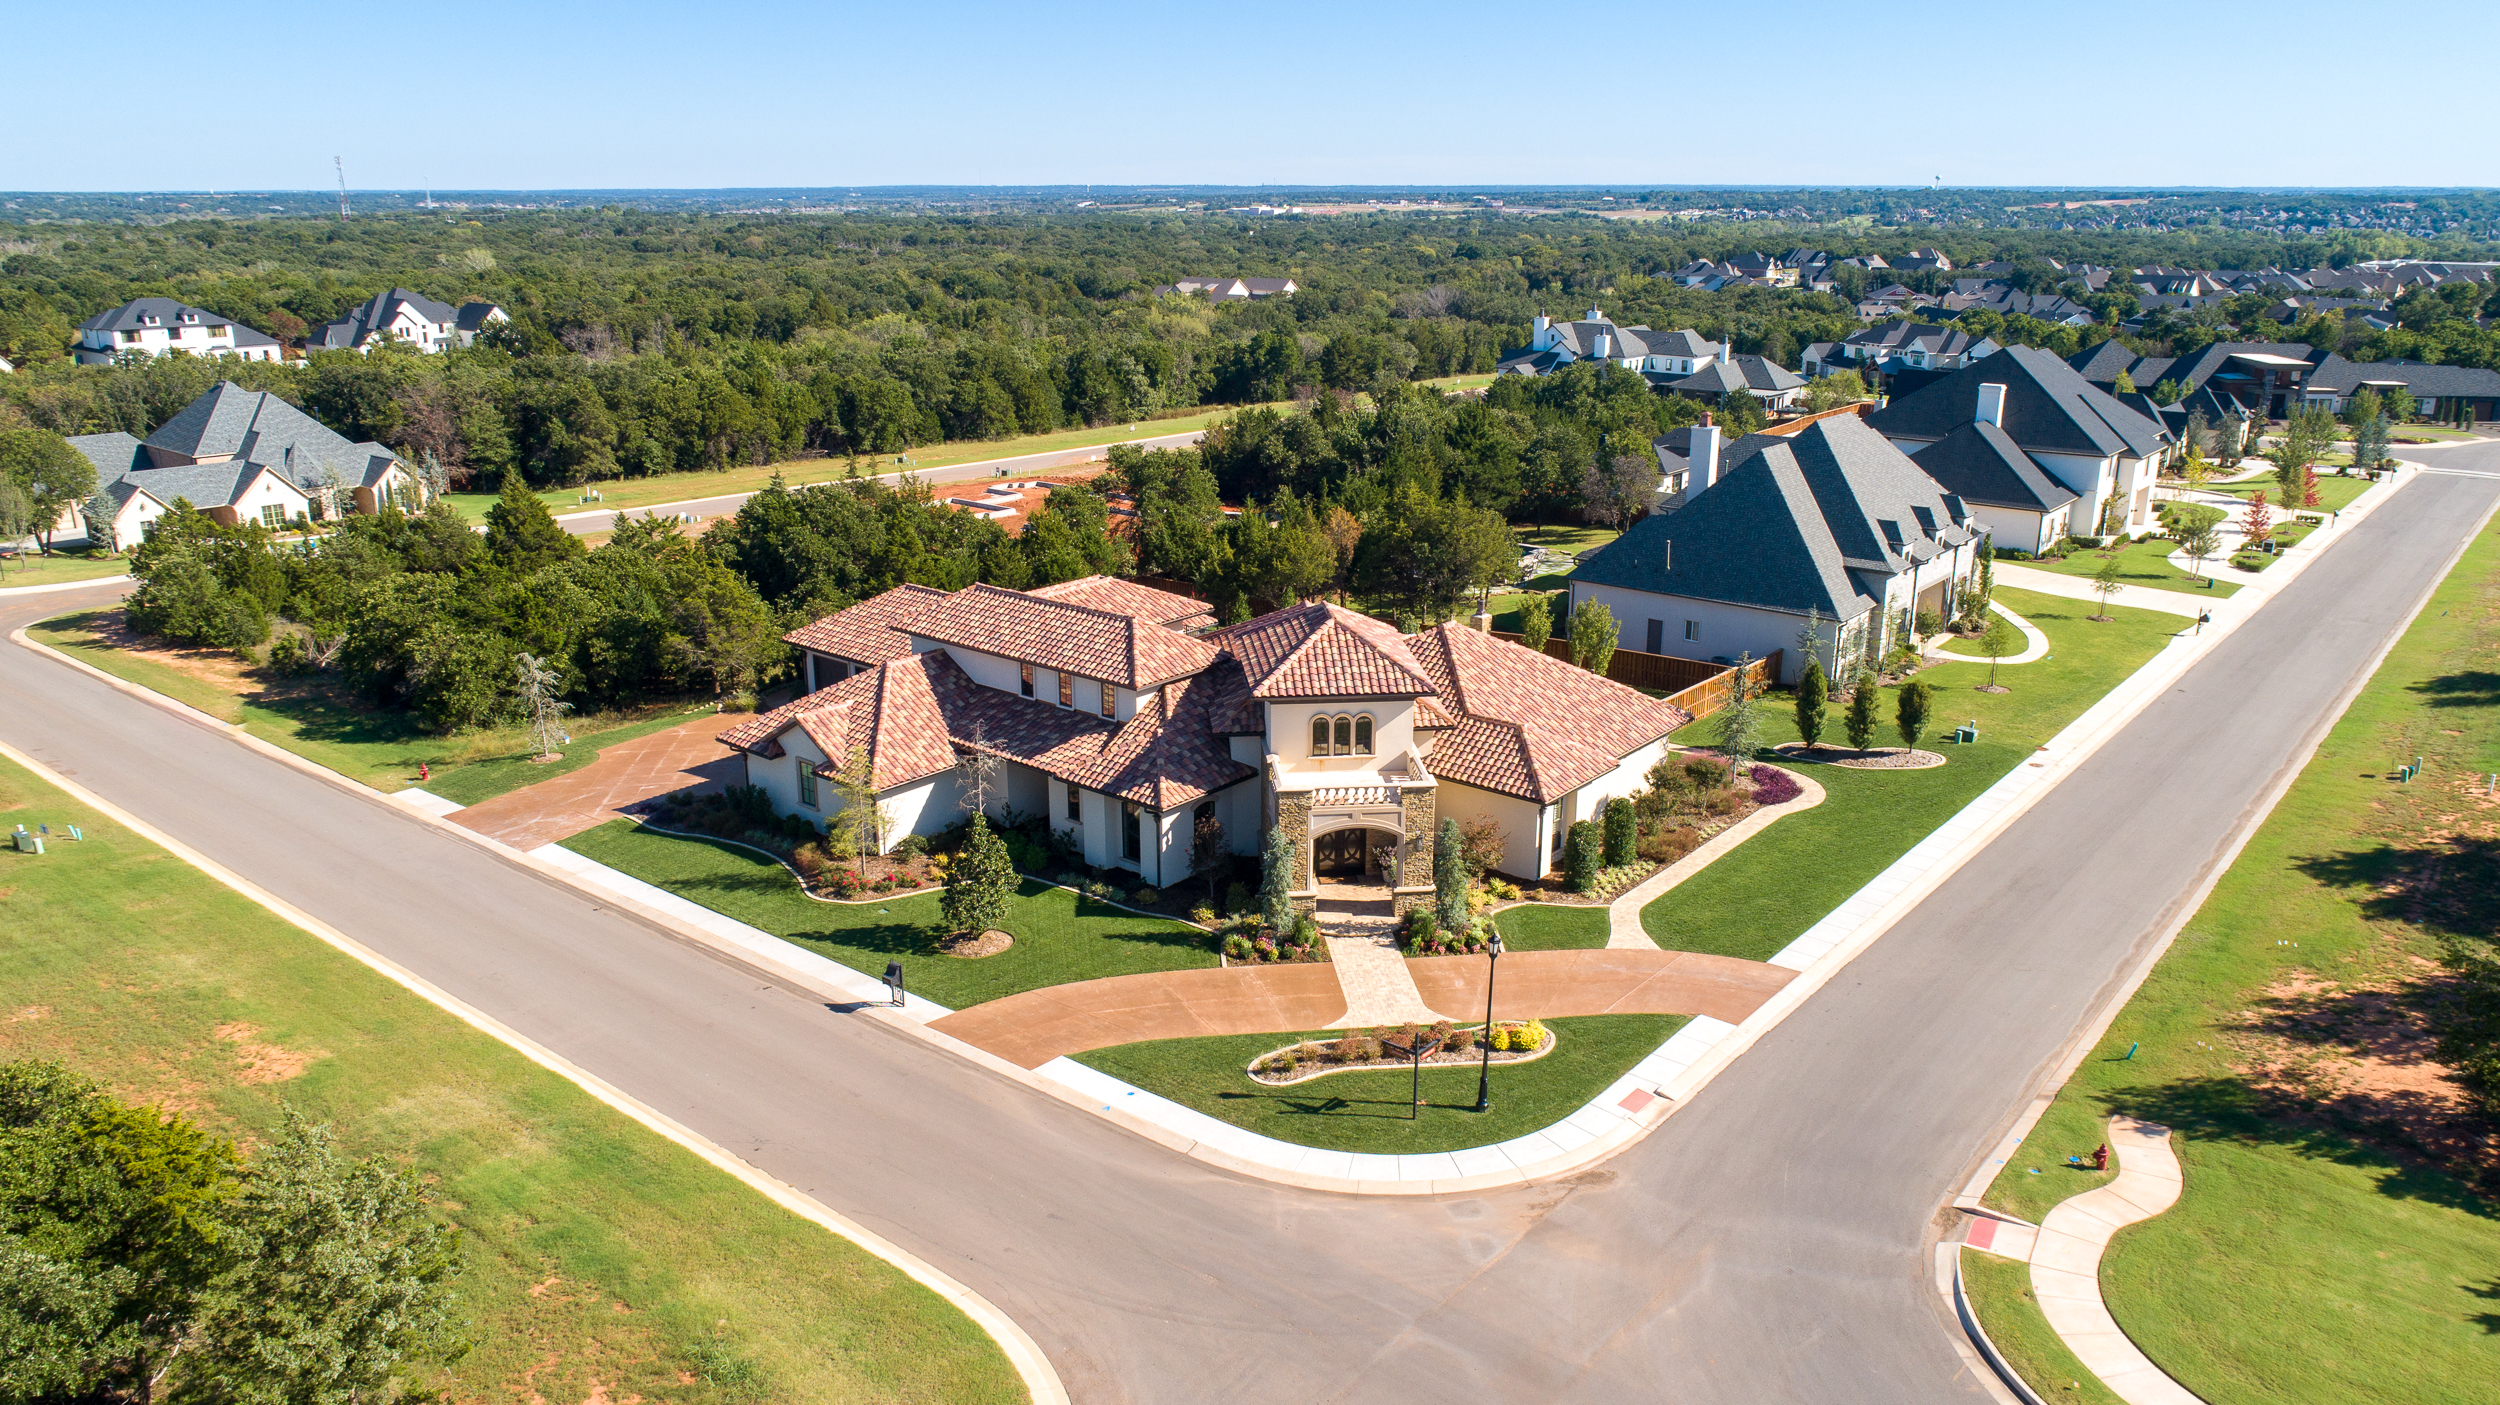 Add ons - 5 Aerial Images ....................................... $5010 Community Photos ............................ $50add 20 miles or 30 minutes of travel …..$5030 Minute reshoot ………………………… $6530 Minute additional time …….…………. $50